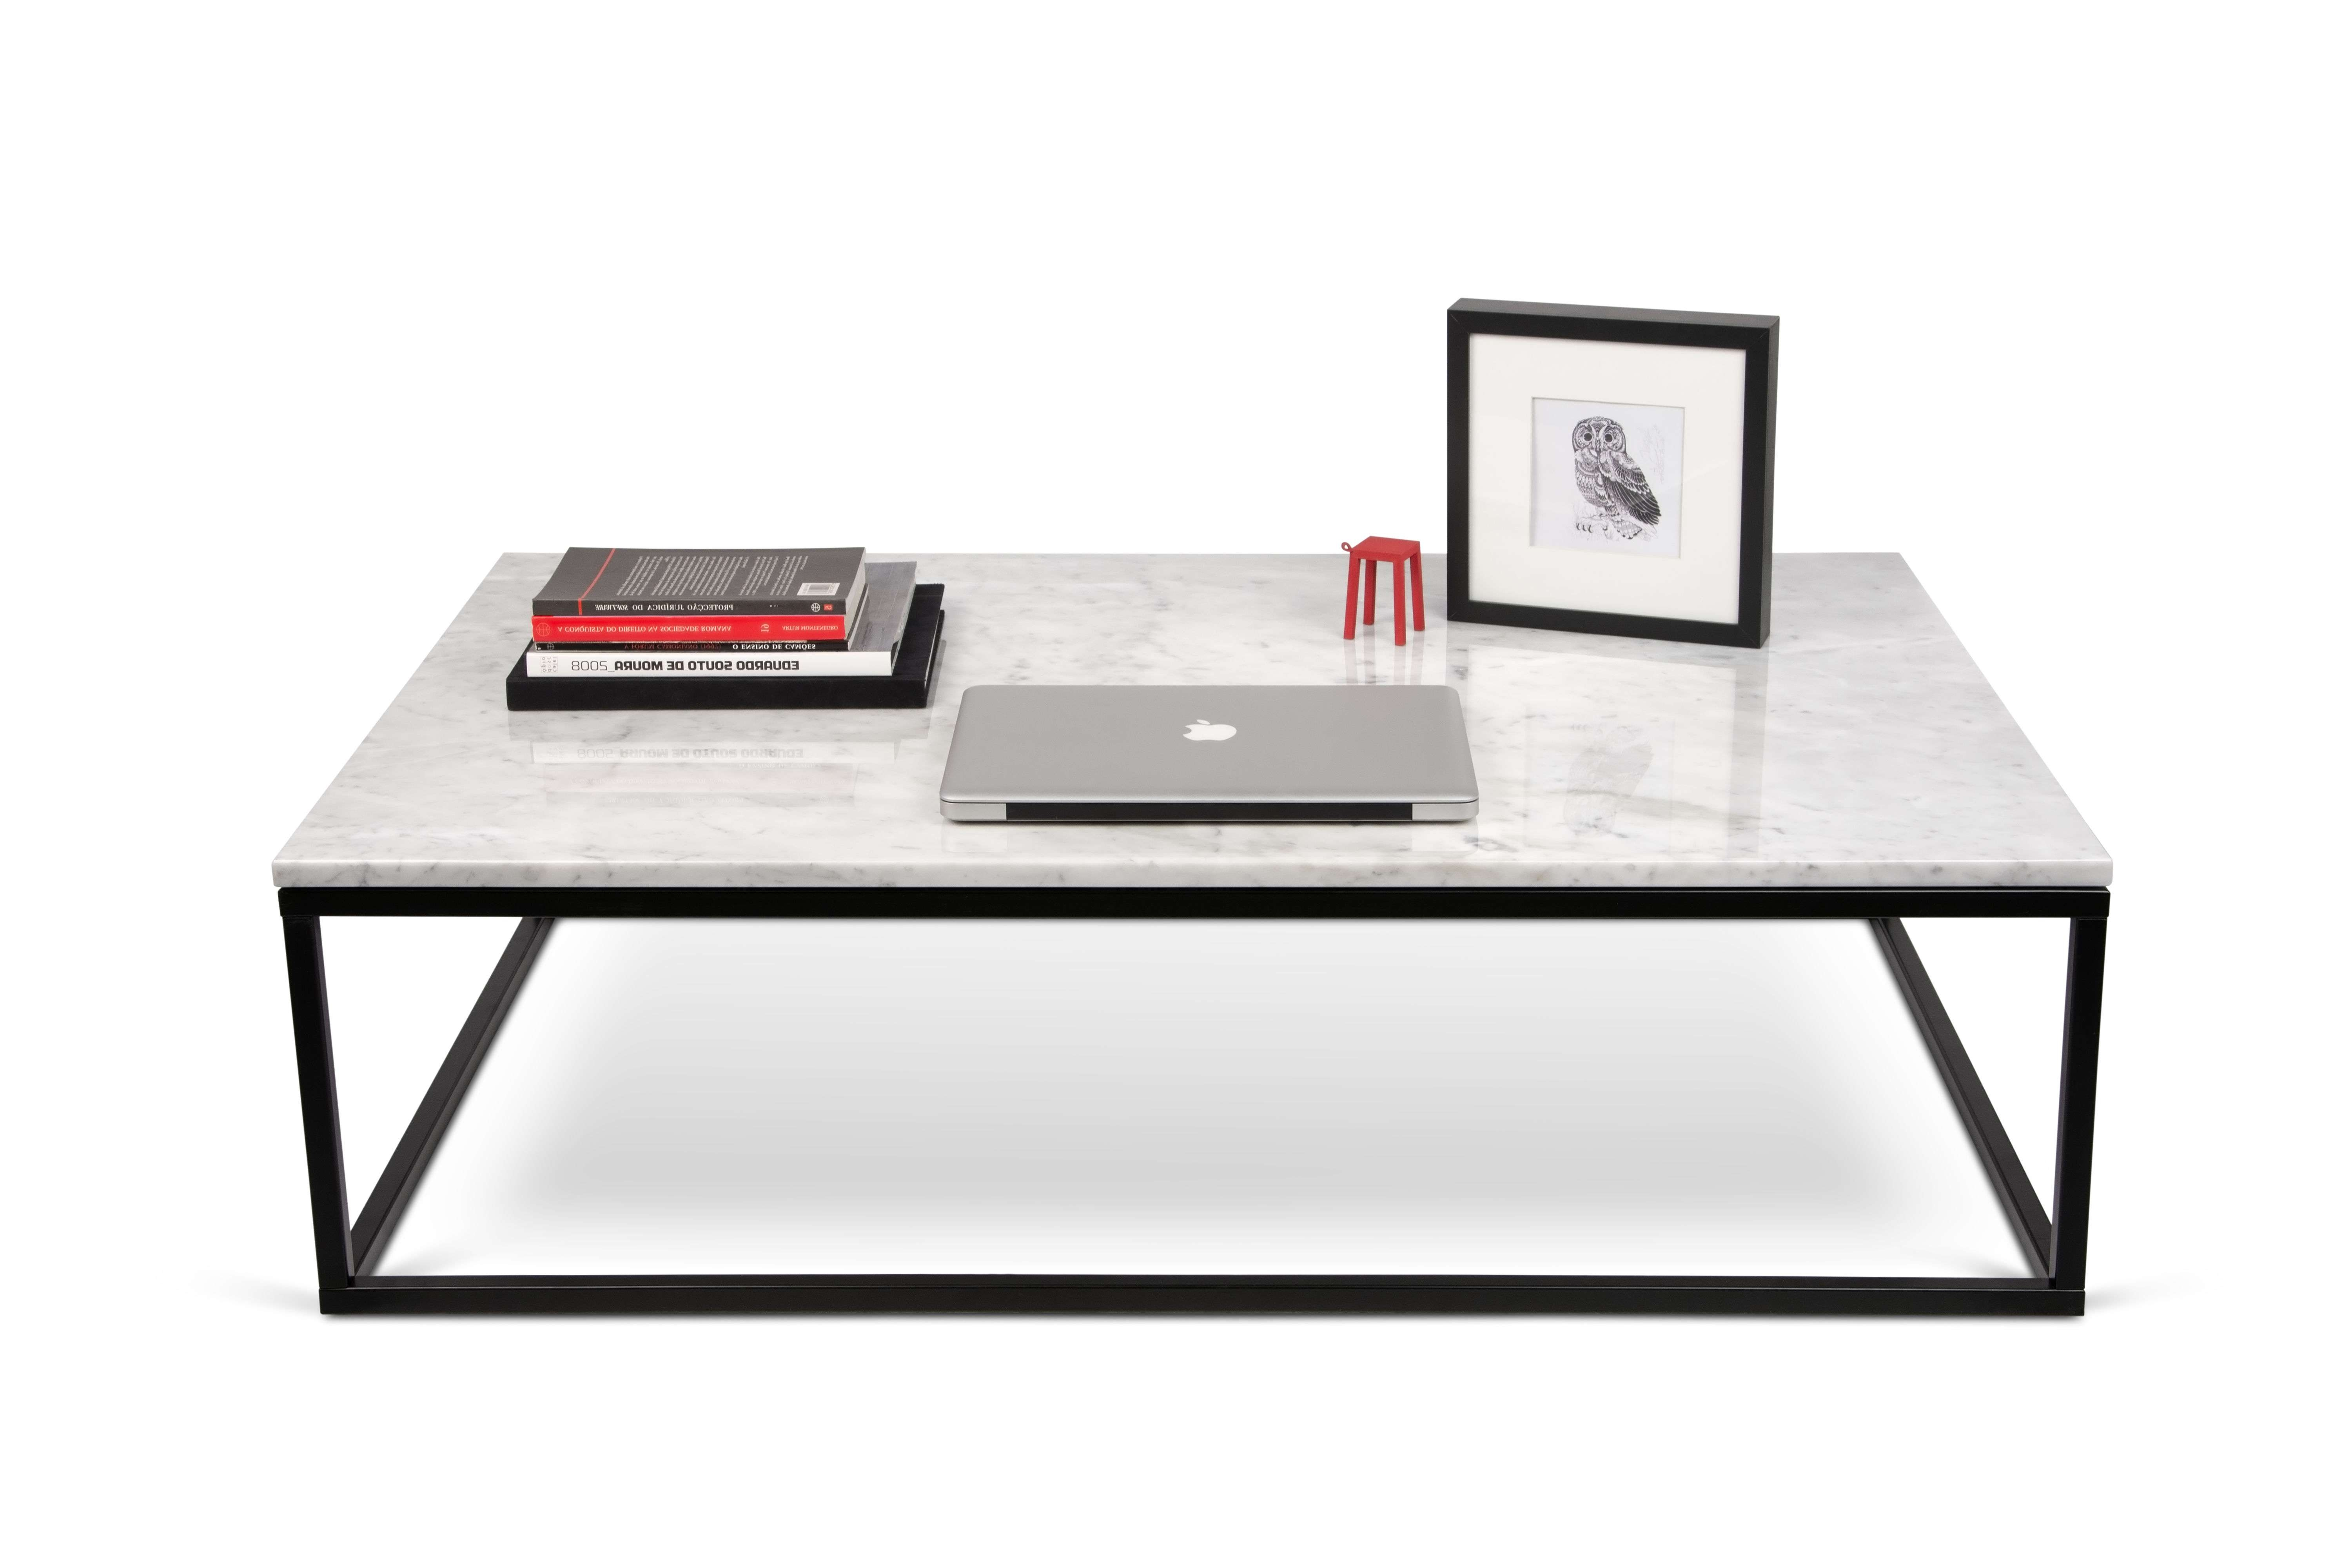 Marble Coffee Table – / Marble – 120 X 75 Cm White Marble / Black Intended For Recent White And Black Coffee Tables (View 7 of 20)